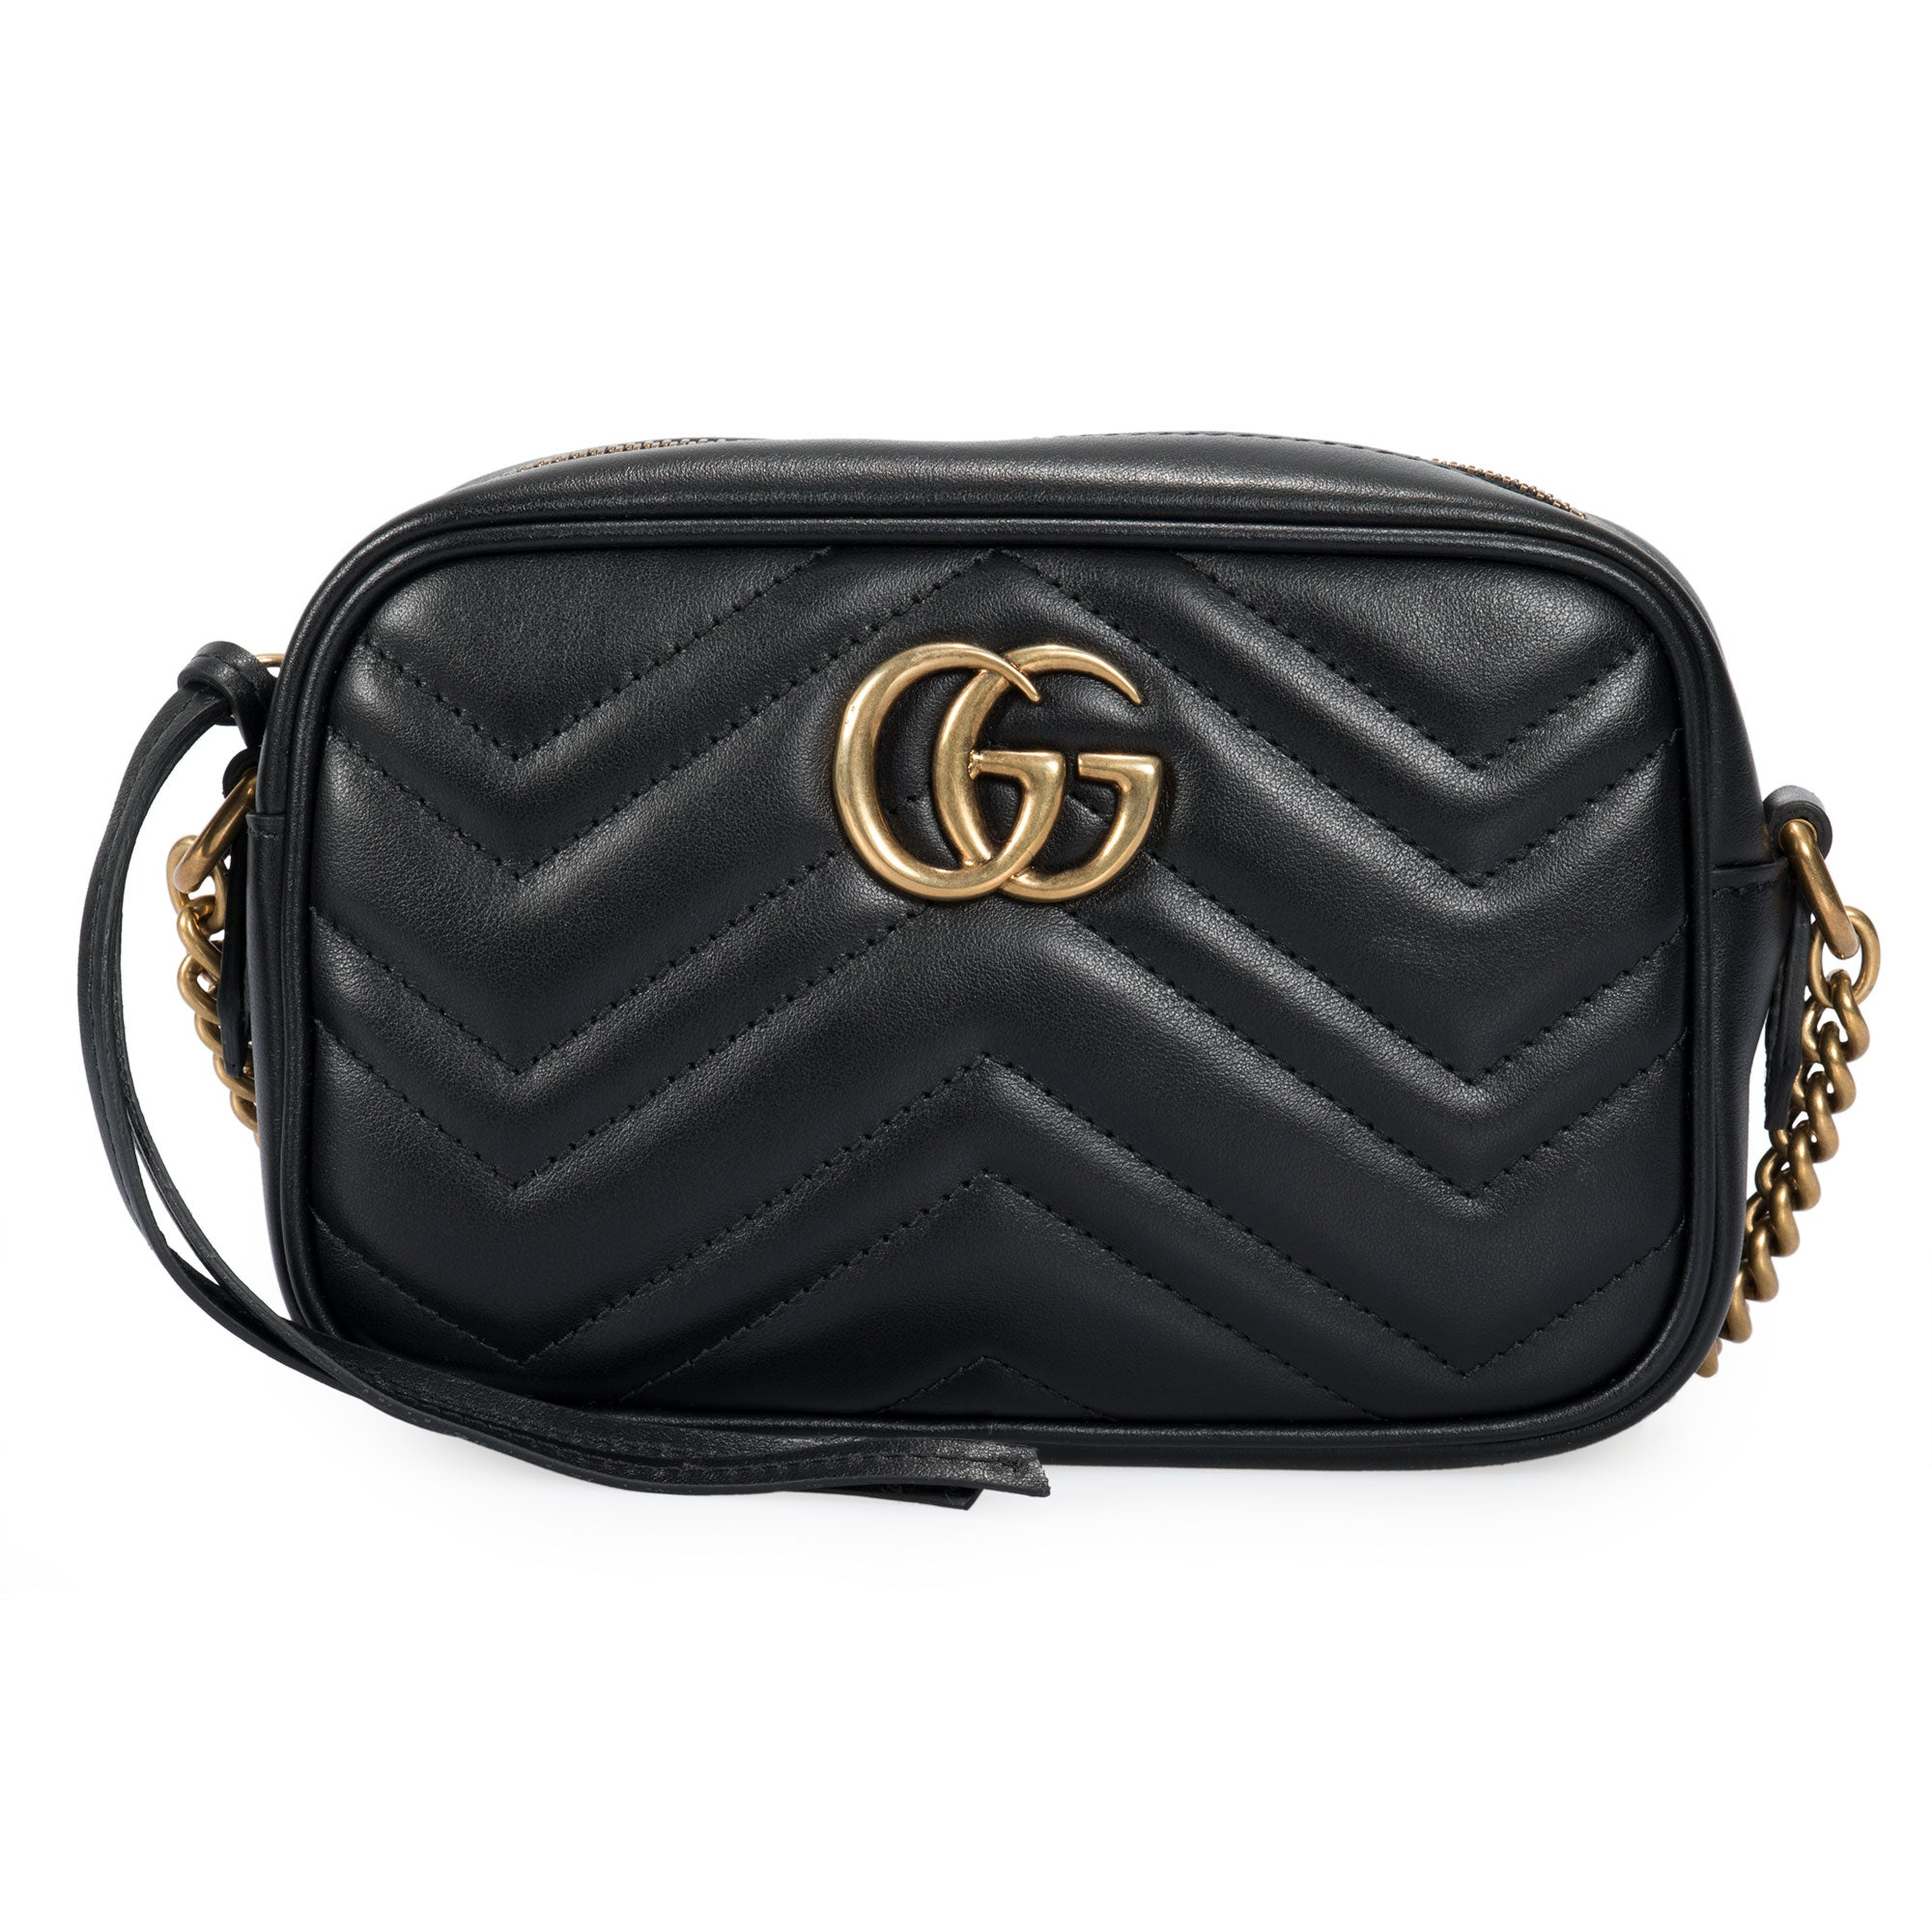 1ba099c7b Gucci Bags For Sale In South Africa